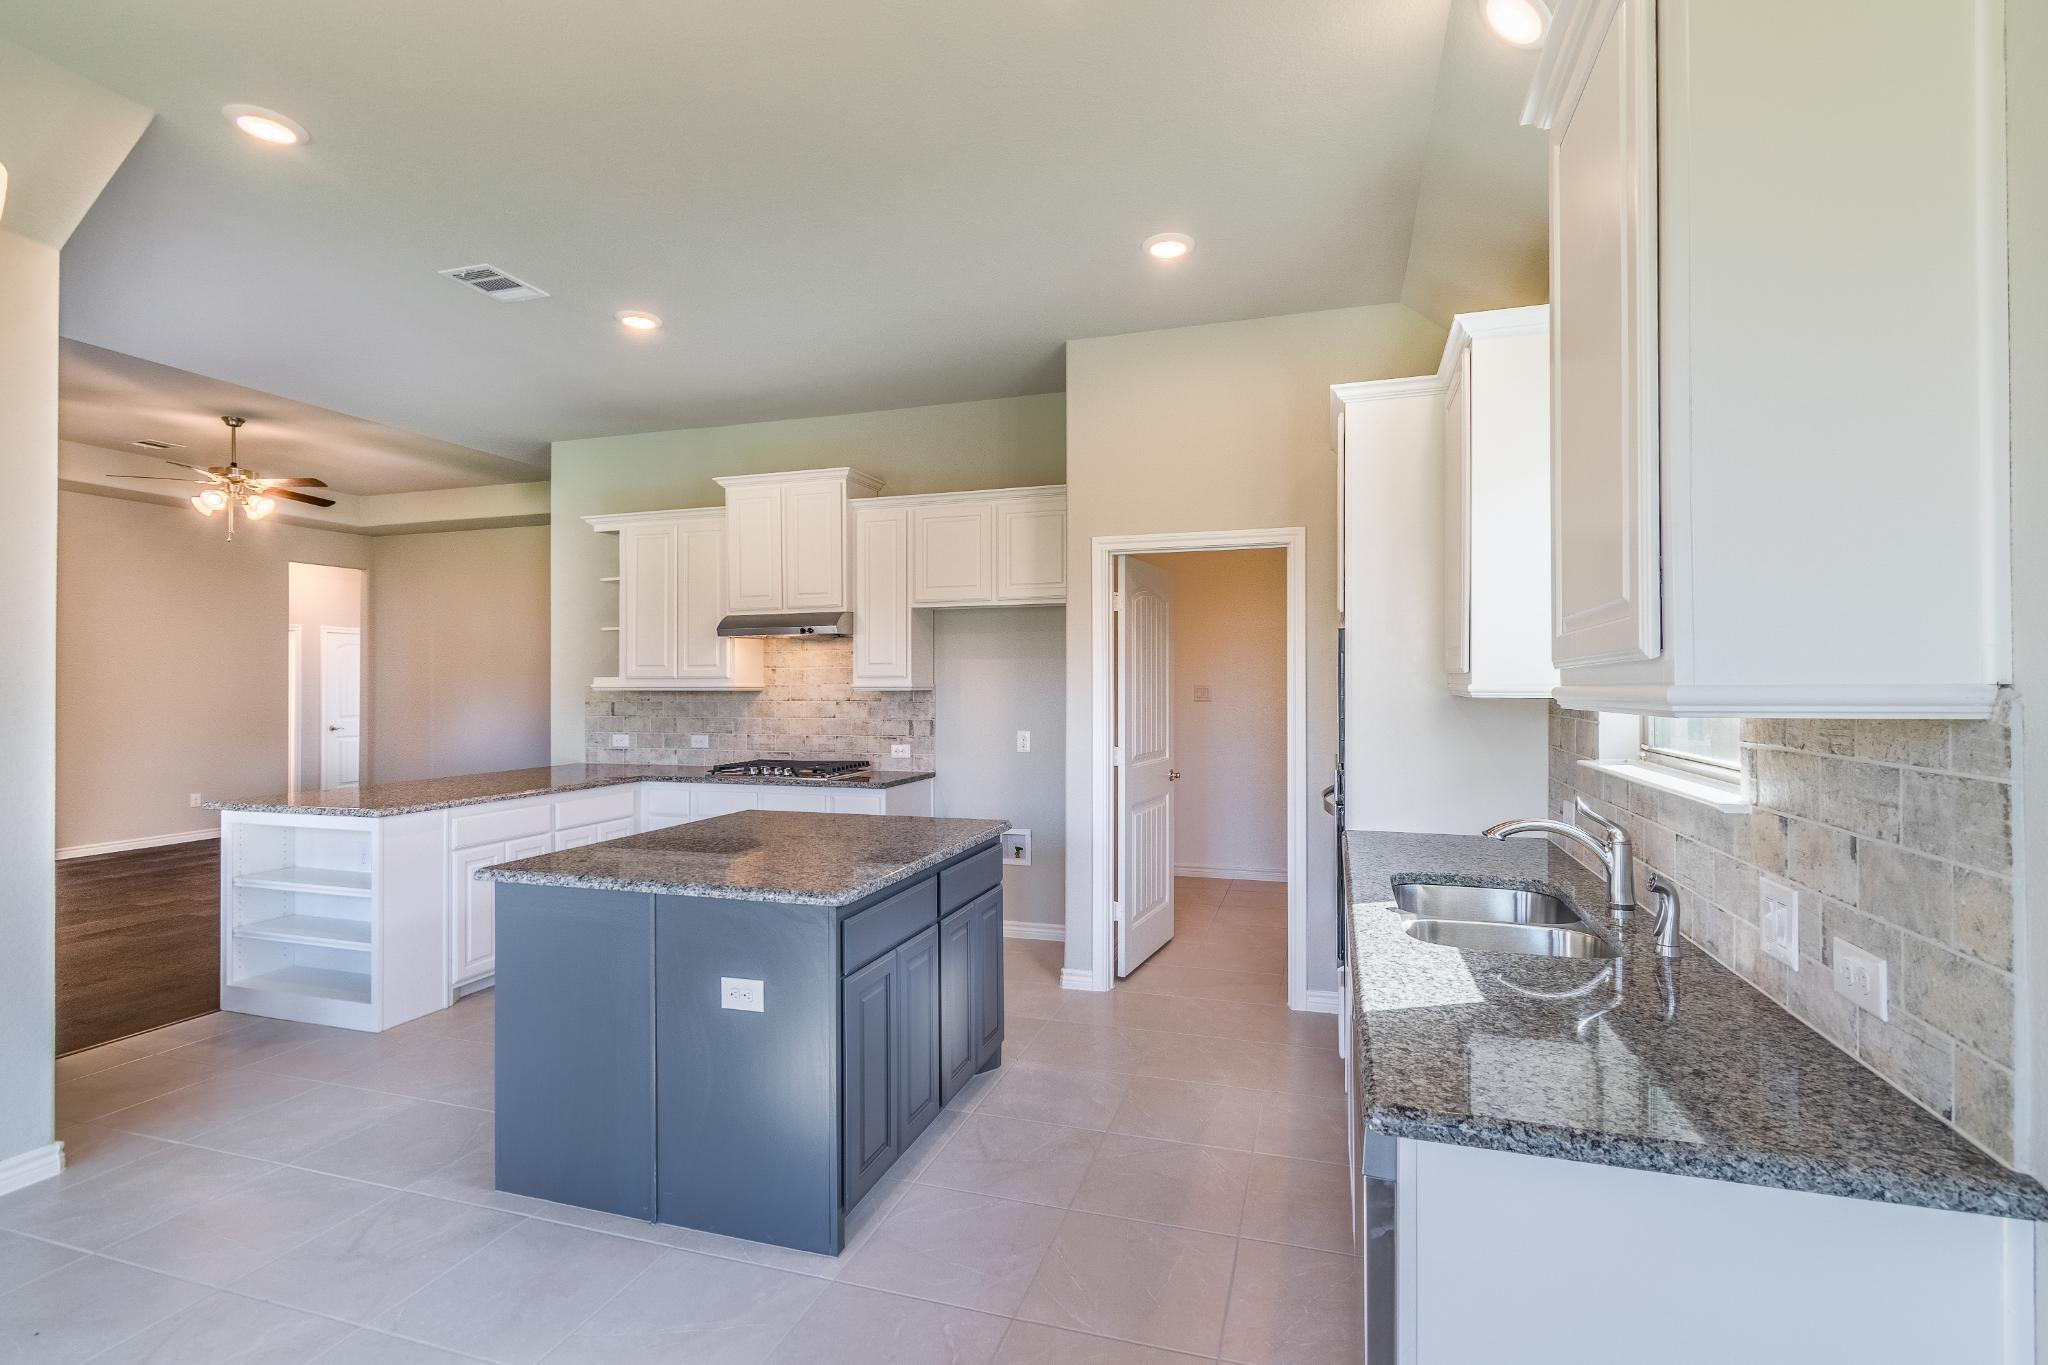 Kitchen featured in the 2027 By Antares Homes in Fort Worth, TX